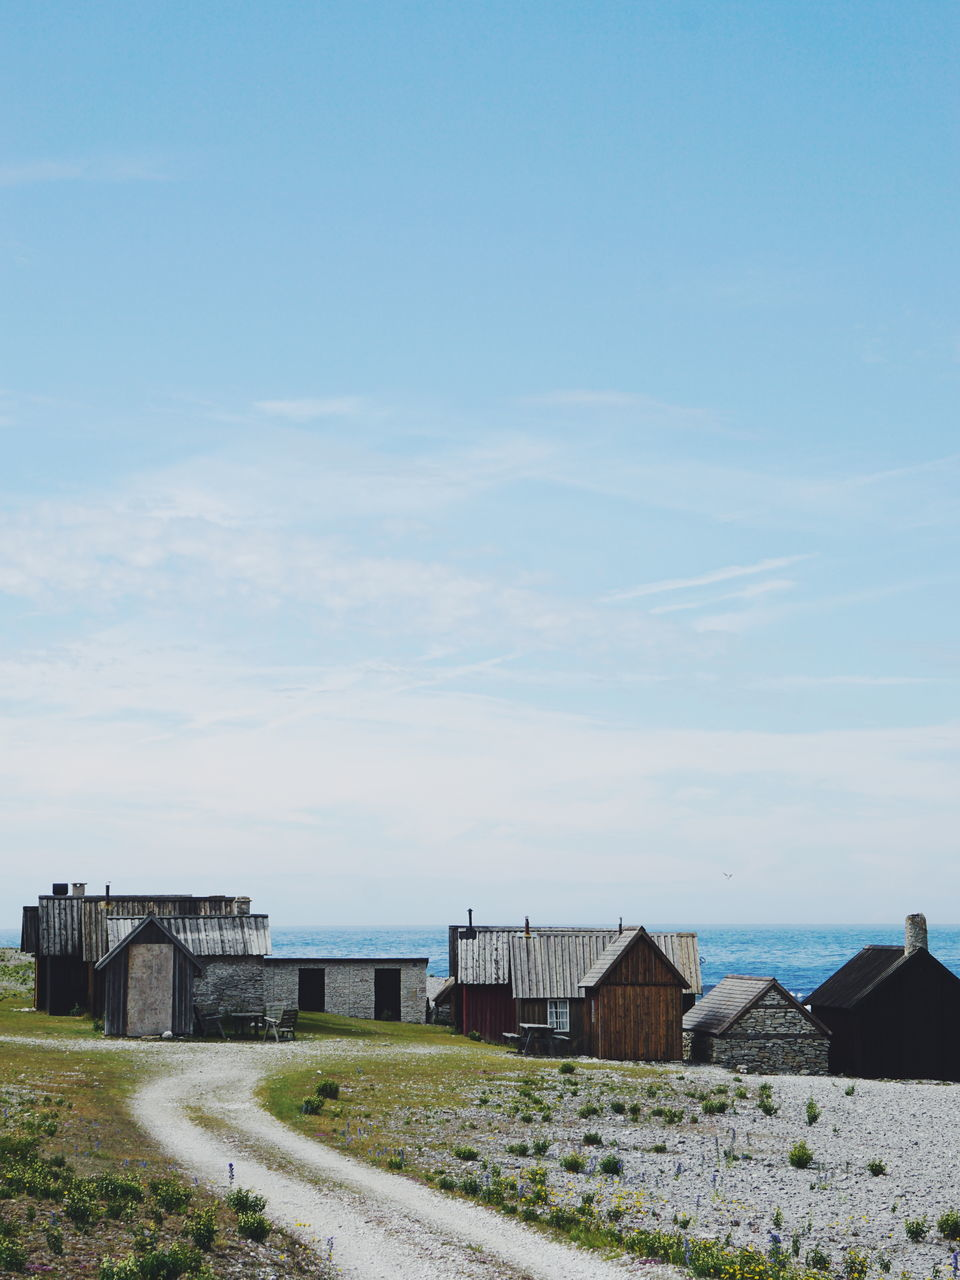 Old Fishing Village On Shore At Beach Against Sky At Helgumannen